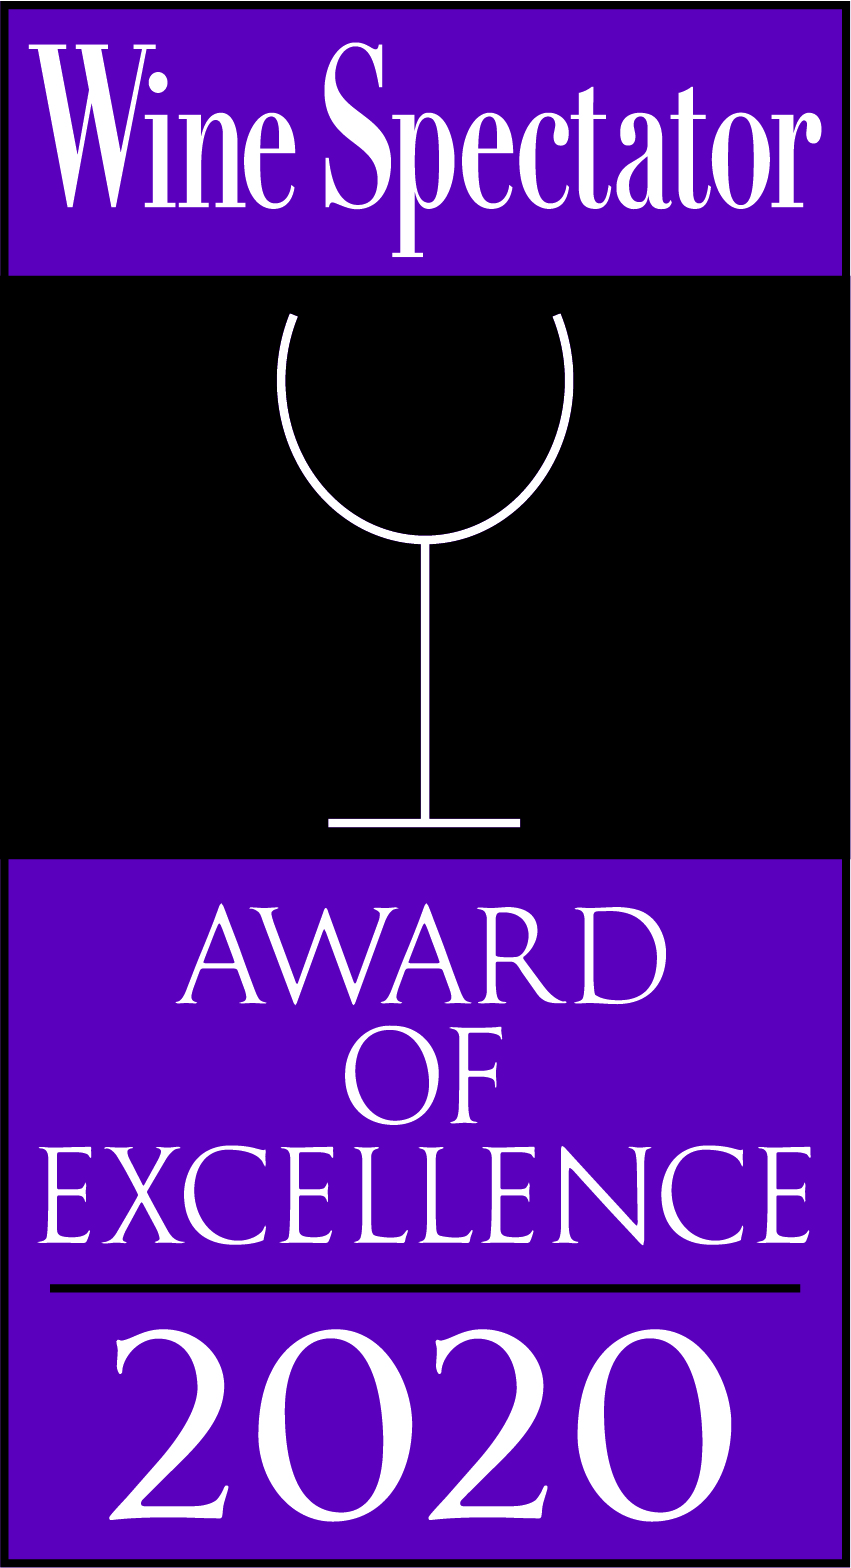 Wine Spectator 2020 Award of Excellence Winner